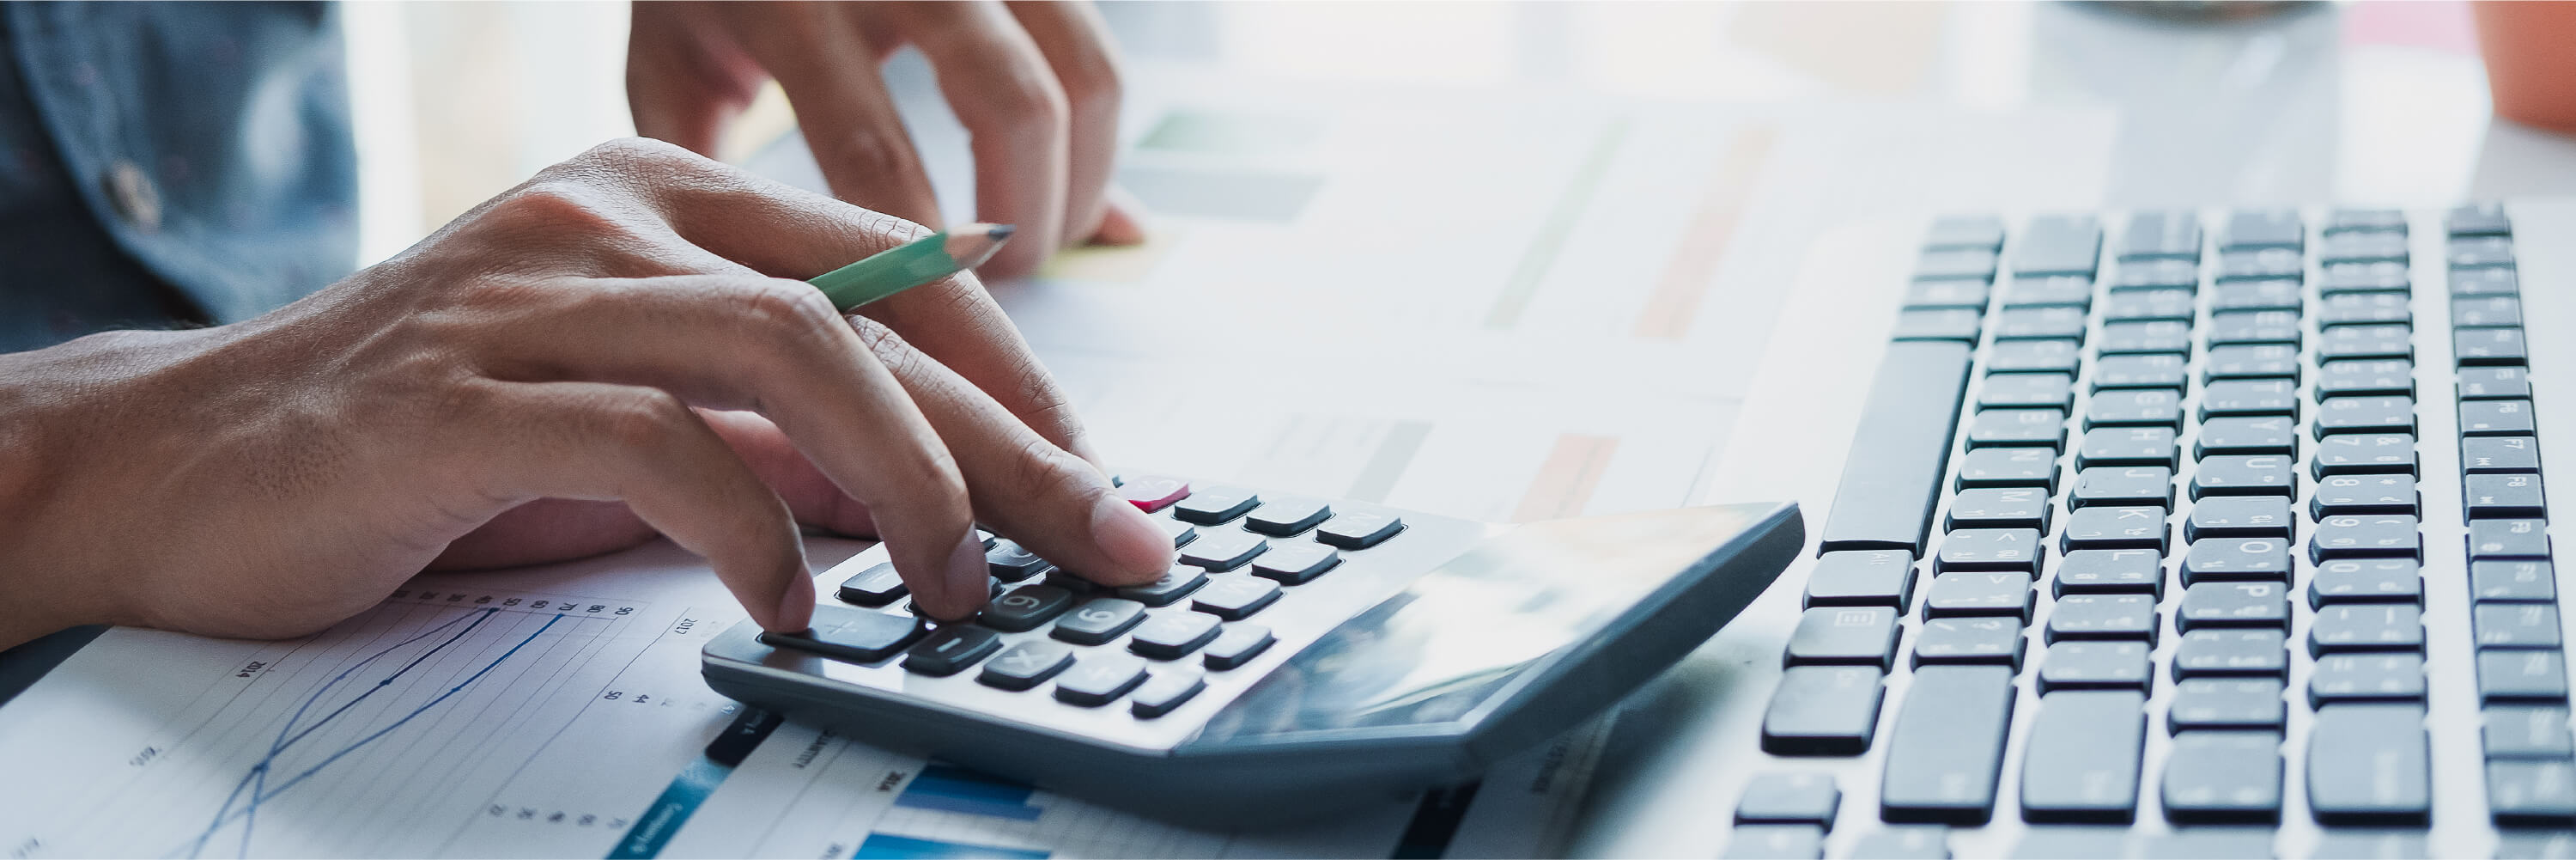 person calculating their taxes with a calculator